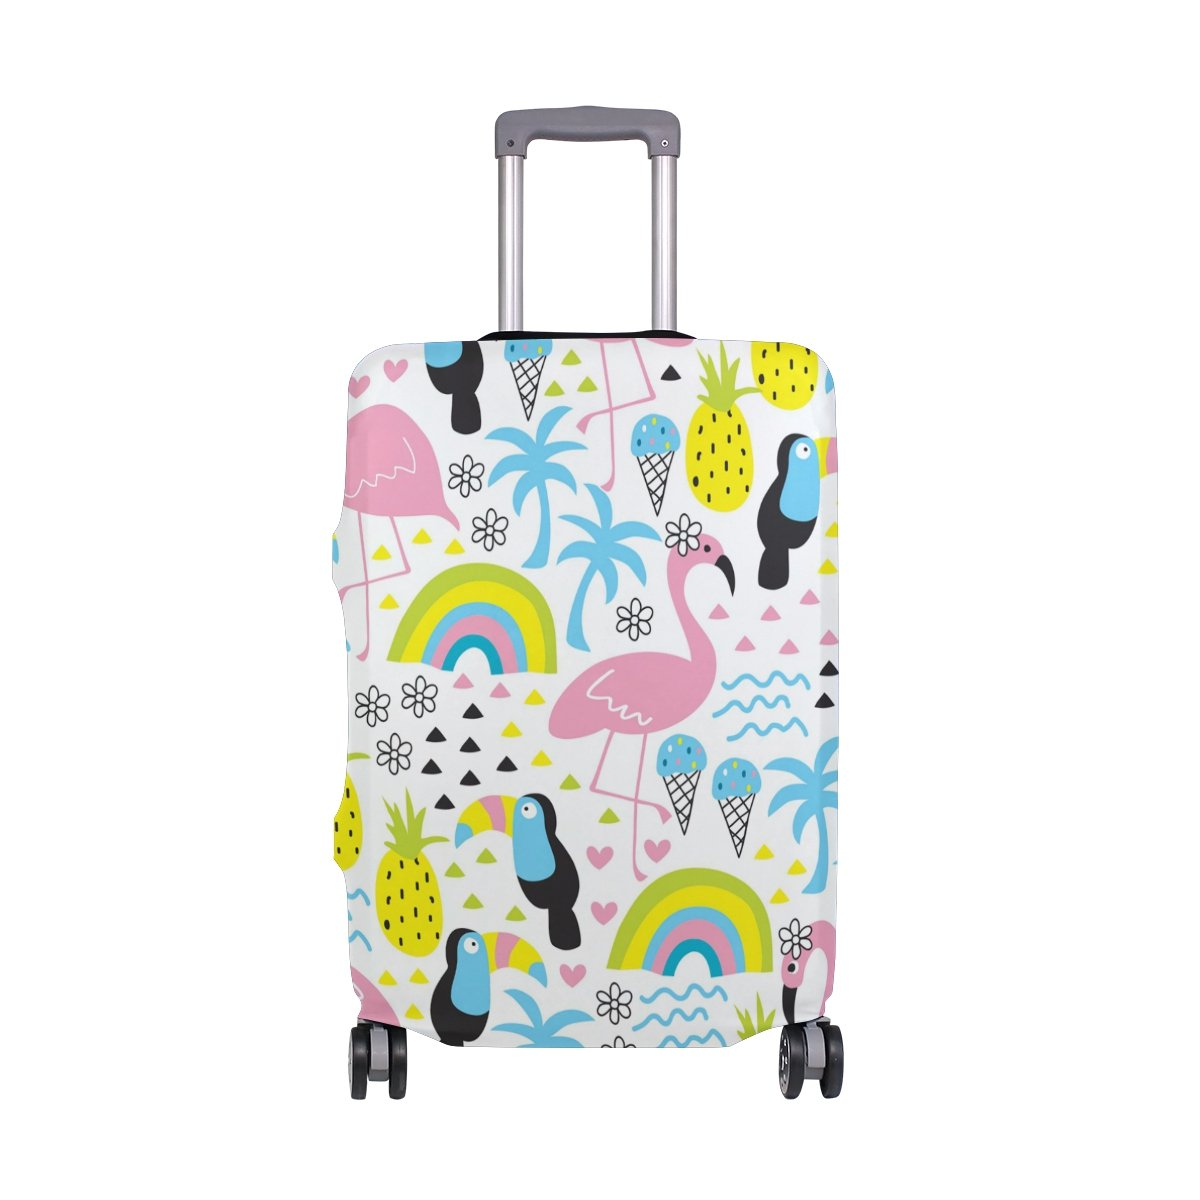 Summer Beach Palm Trees Birds Flamingo Tropical Suitcase Luggage Cover Protector for Travel Kids Men Women